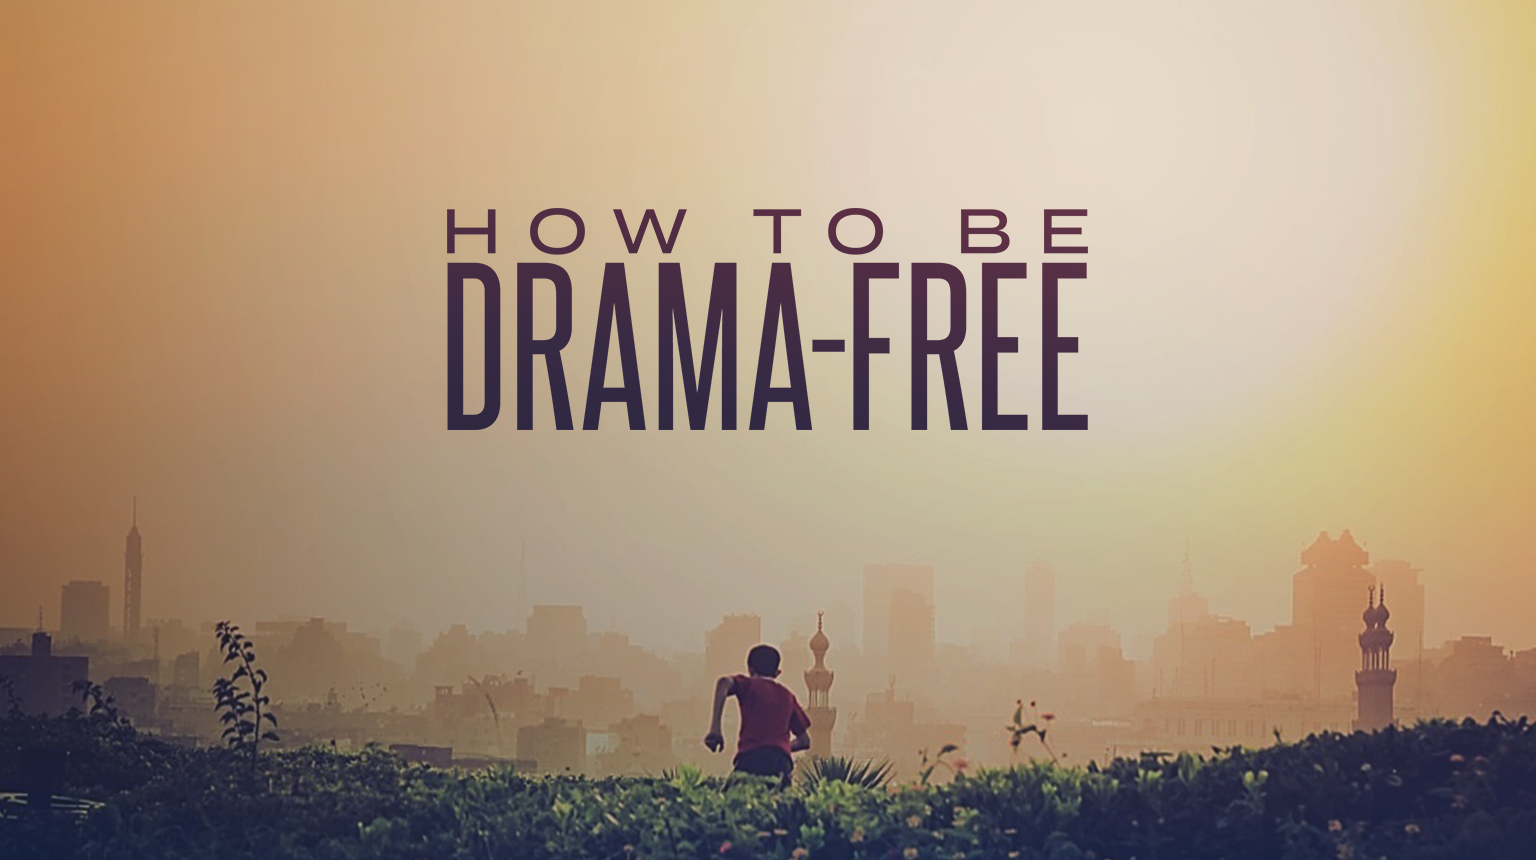 How To Be Drama-Free